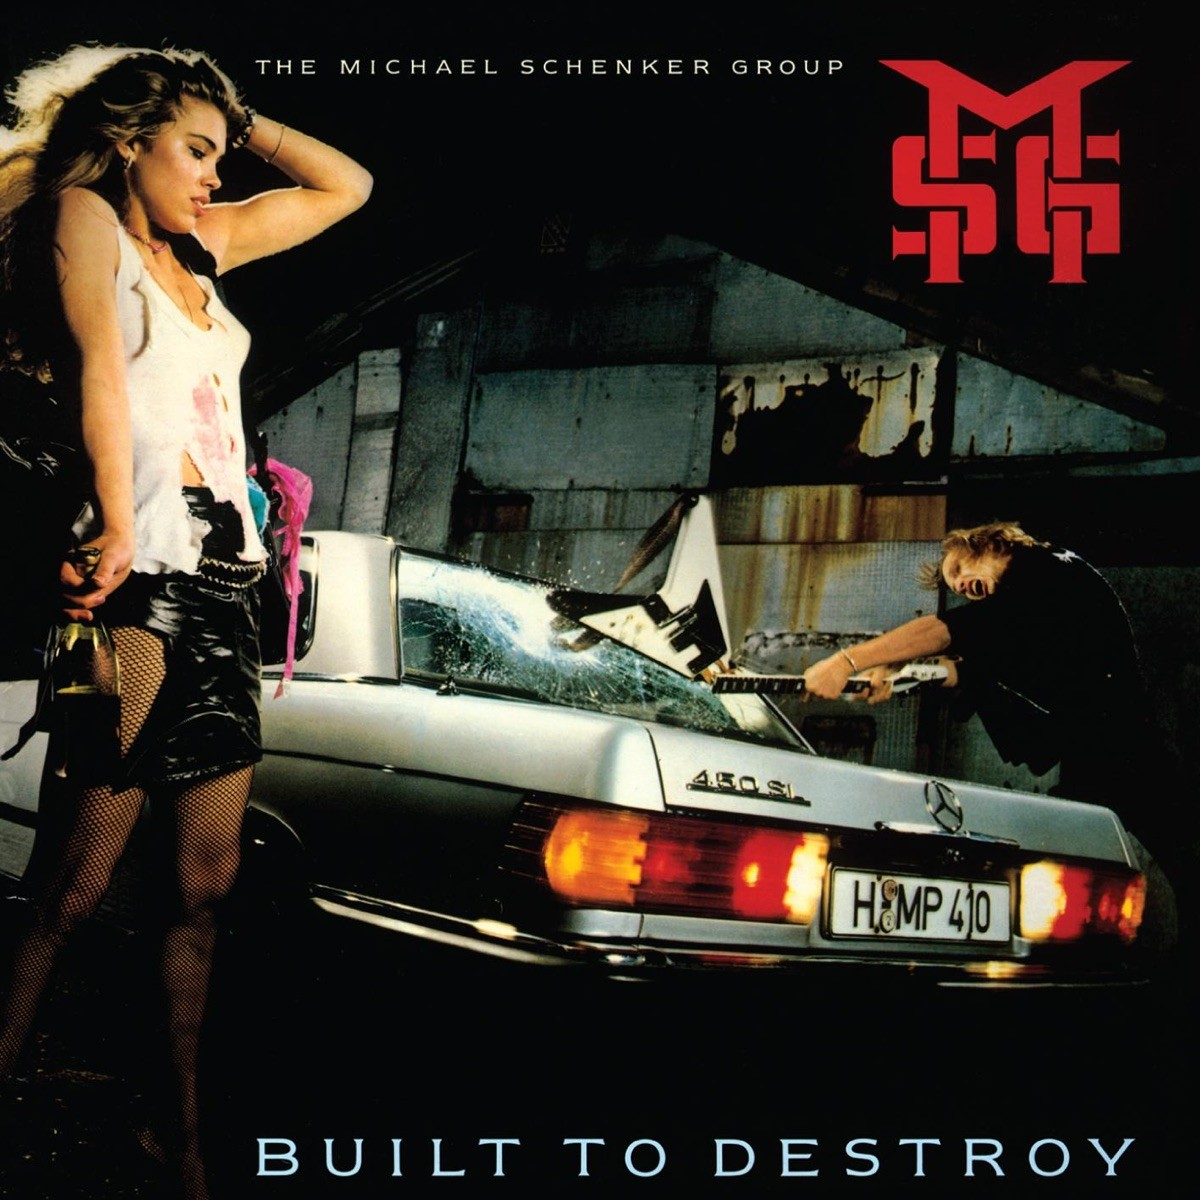 The Michael Schenker Group - Built to Destroy (Picture Disc) VINYL - 506051609107